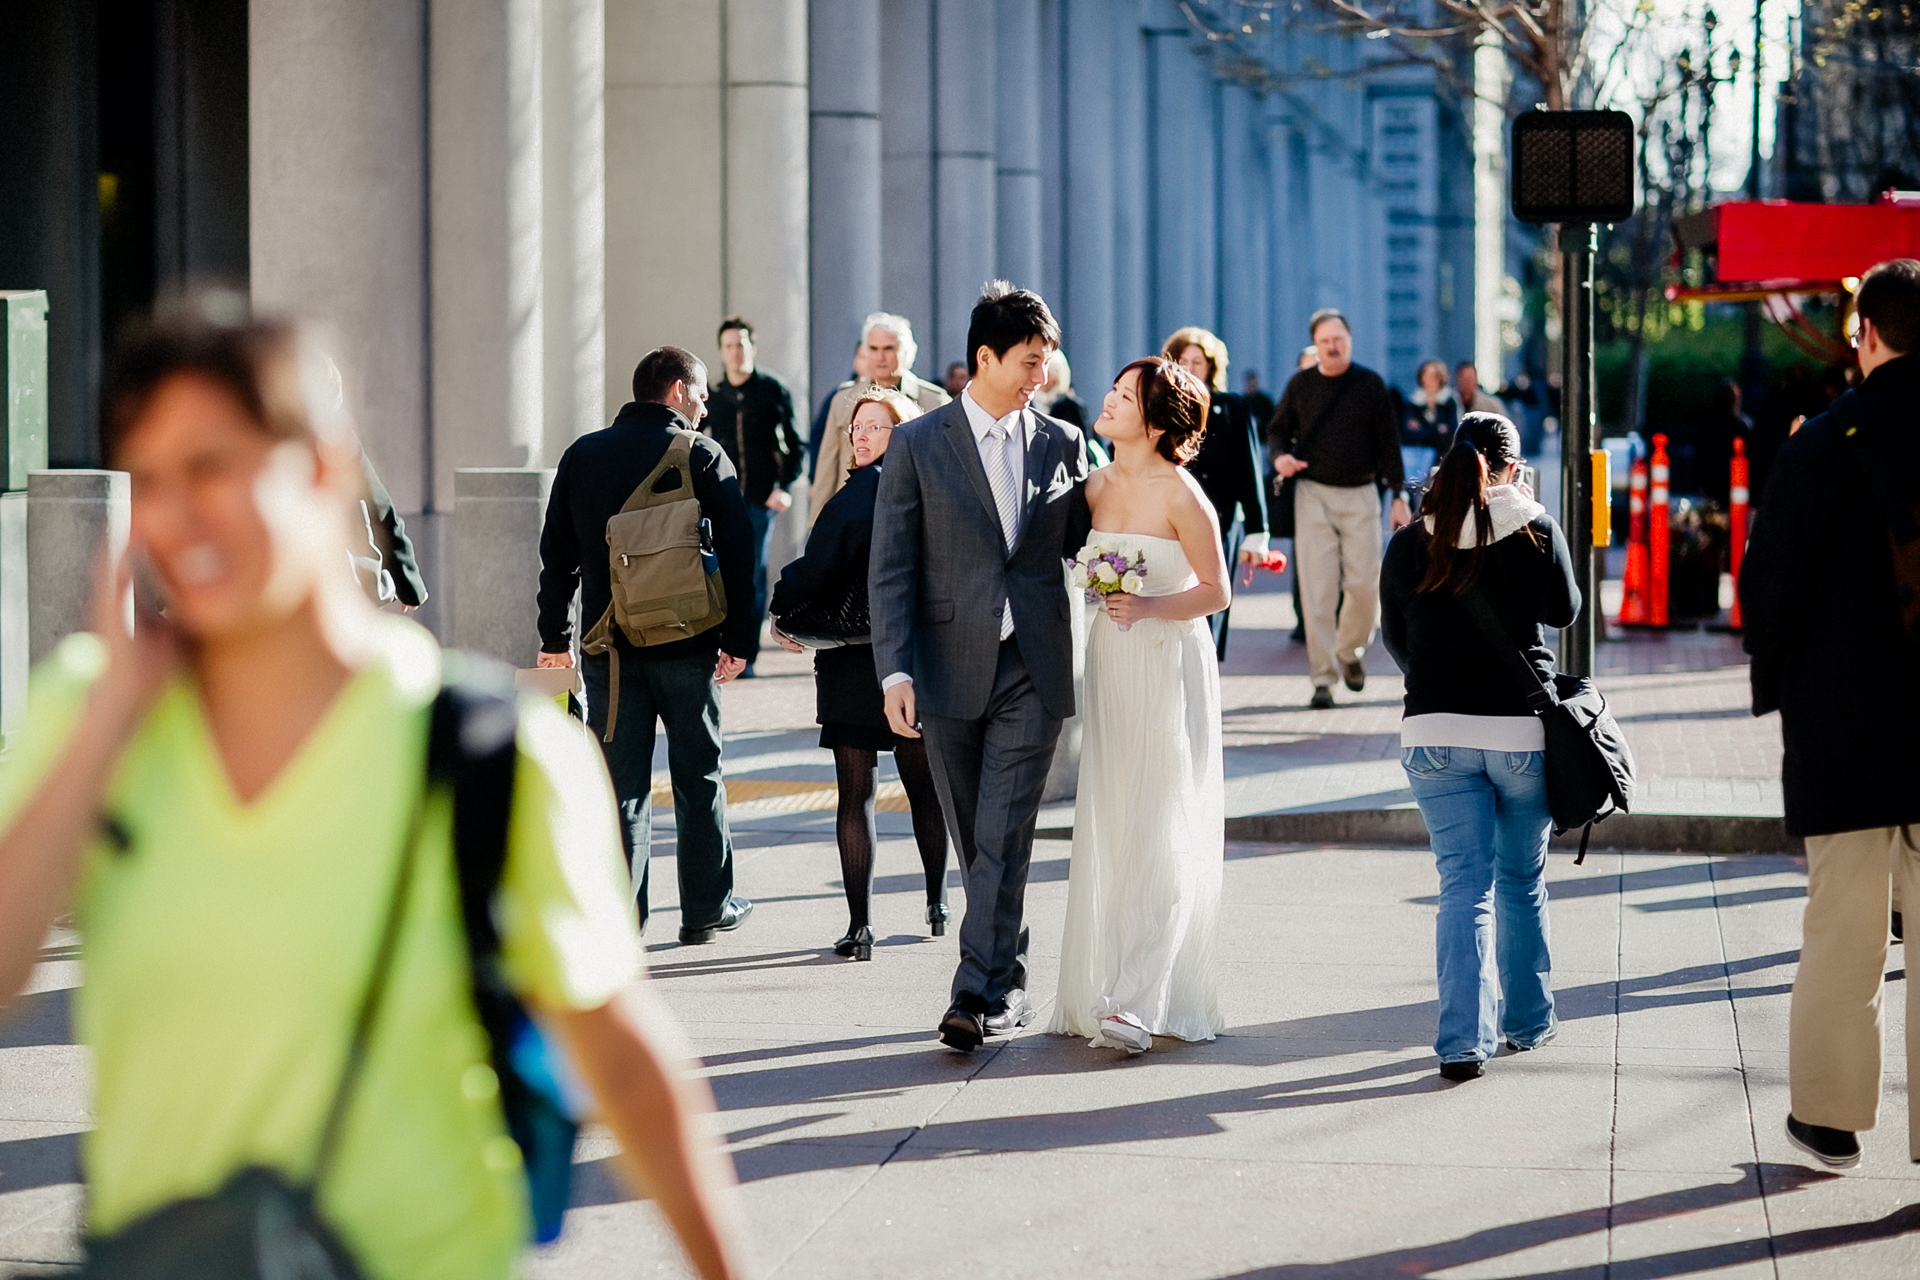 Elopement Image at the San Francisco City Hall | A romantic stroll in the city